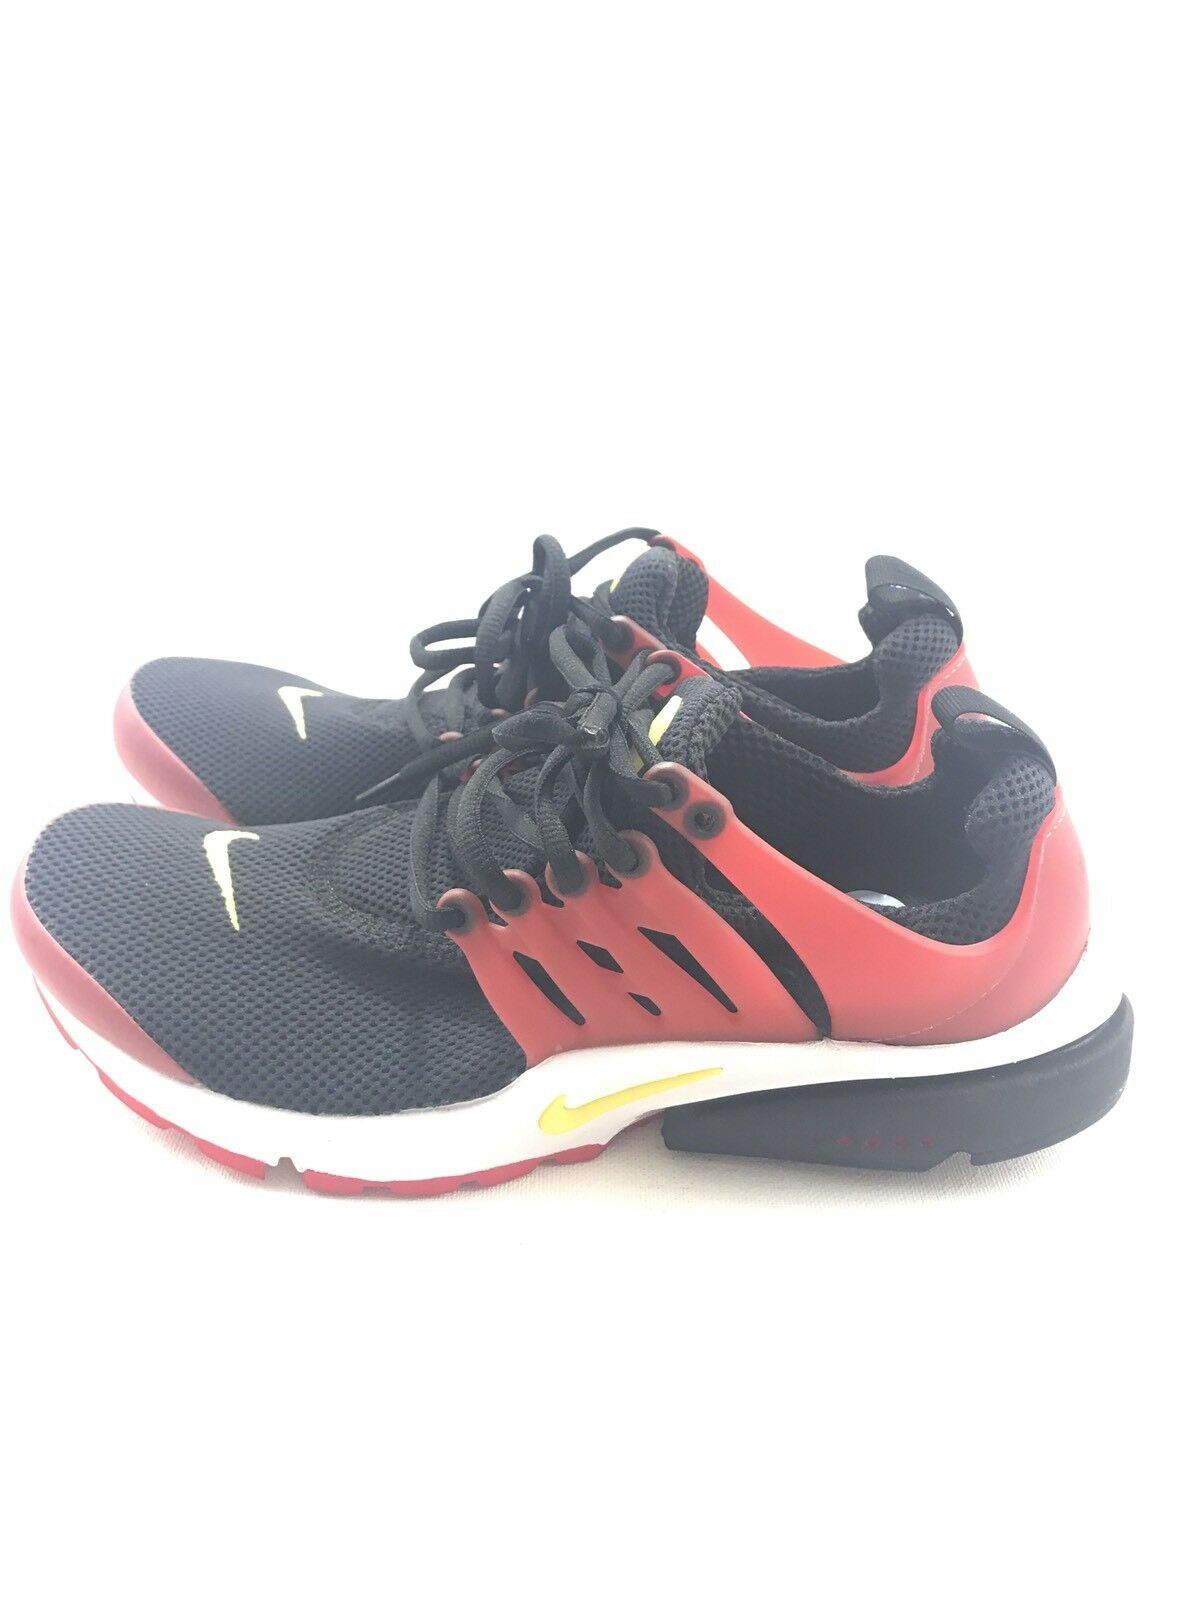 Cheap and beautiful fashion Nike Air Presto Essential Red Black Yellow DS 848187-006 Sz 10.5 Mens 12 Womens